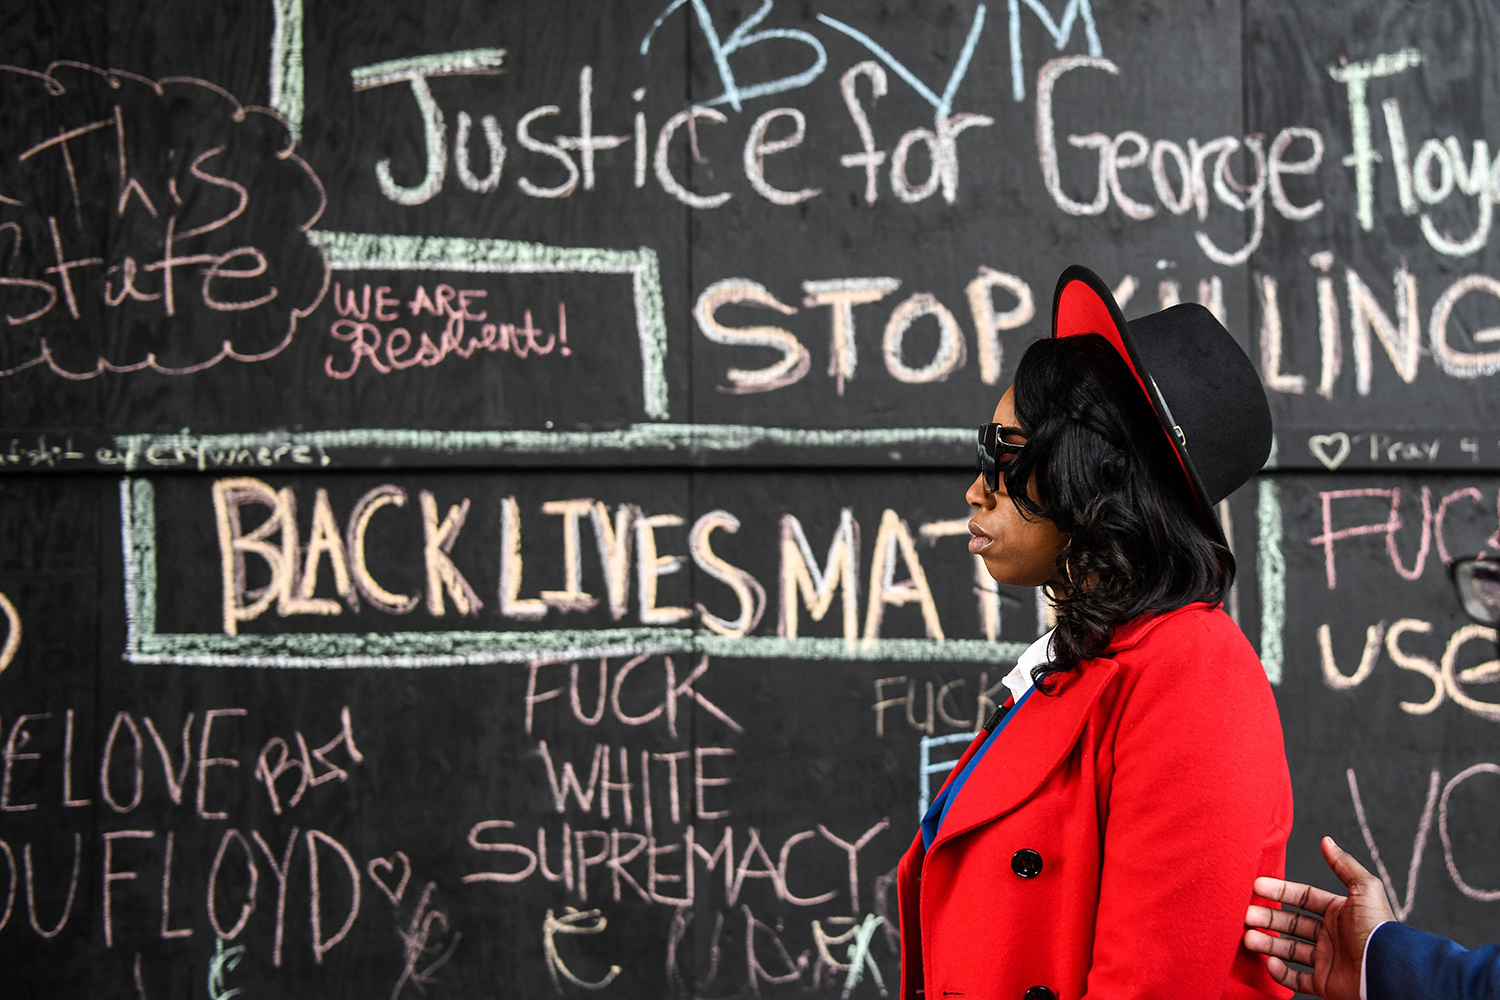 George Floyd's sister Bridgett Floyd walks past messages written by protesters as she leaves the Hennepin County Government Center in Minneapolis on March 8 after the first day of jury selection in the trial of former police officer Derek Chauvin, who is accused of killing George Floyd last May. CHANDAN KHANNA/AFP via Getty Images